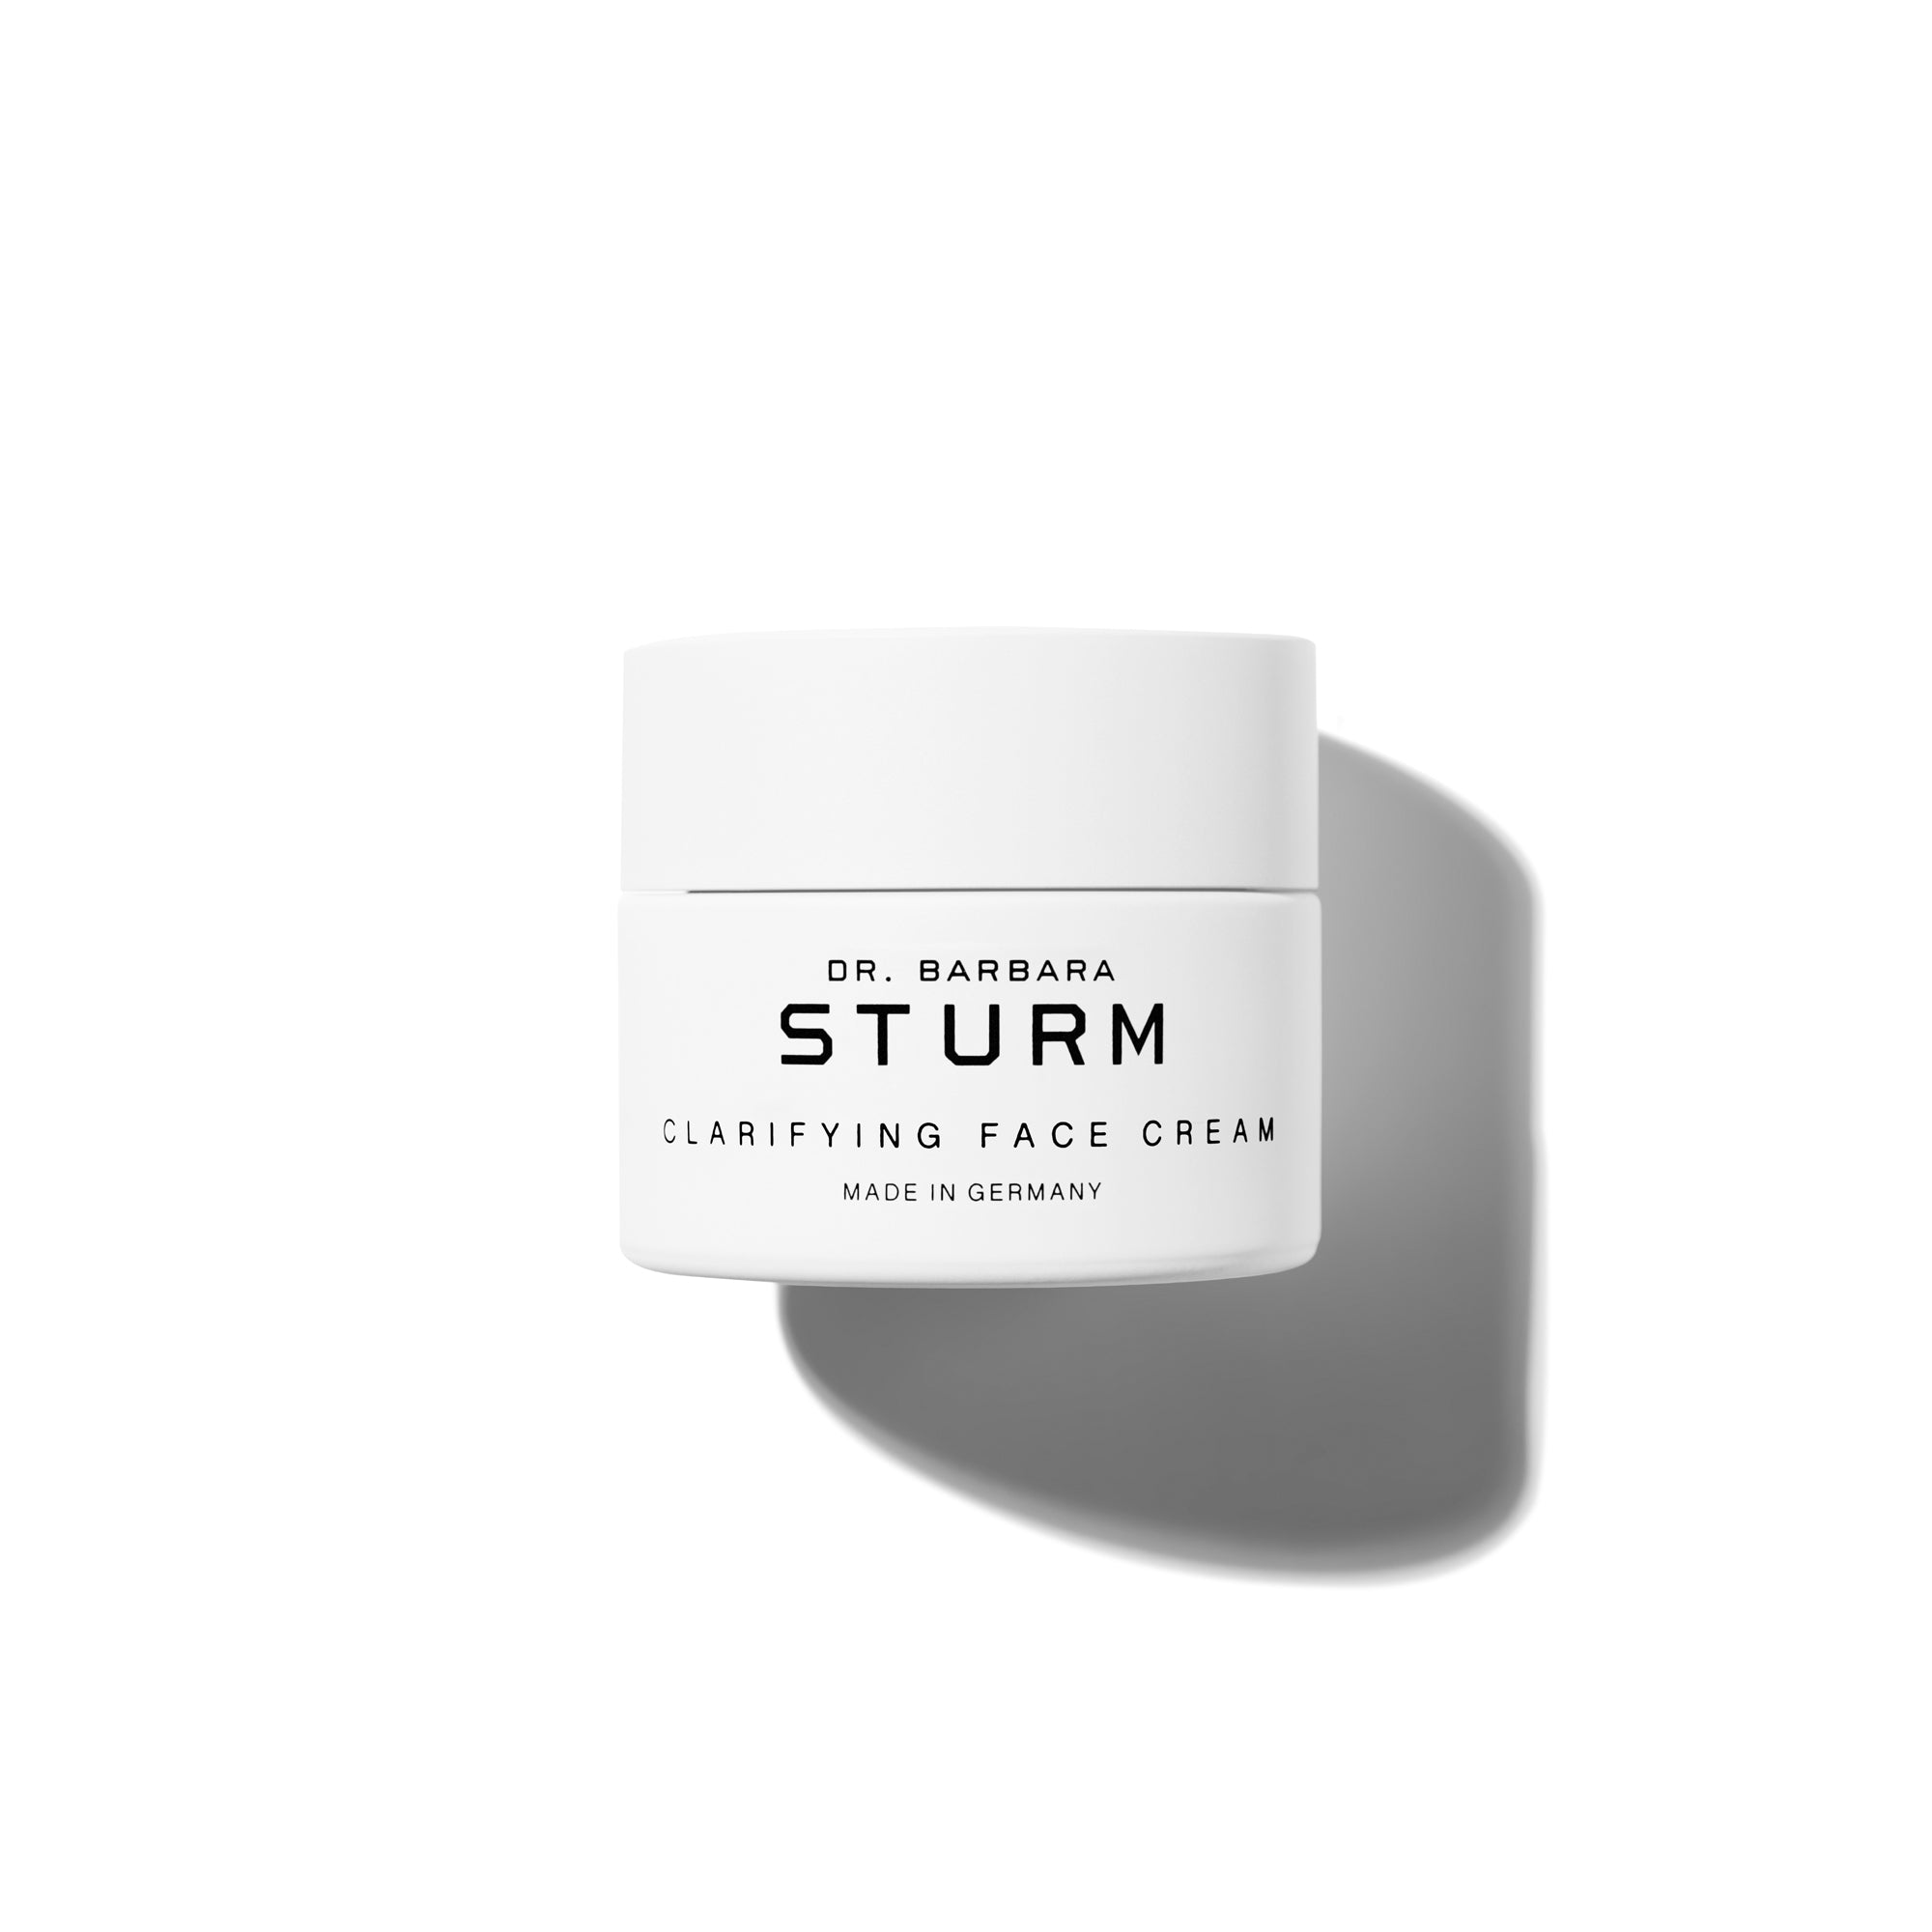 Buy Dr. Babara Sturm Clarifying Face Cream from Delaire Graff Estate online store